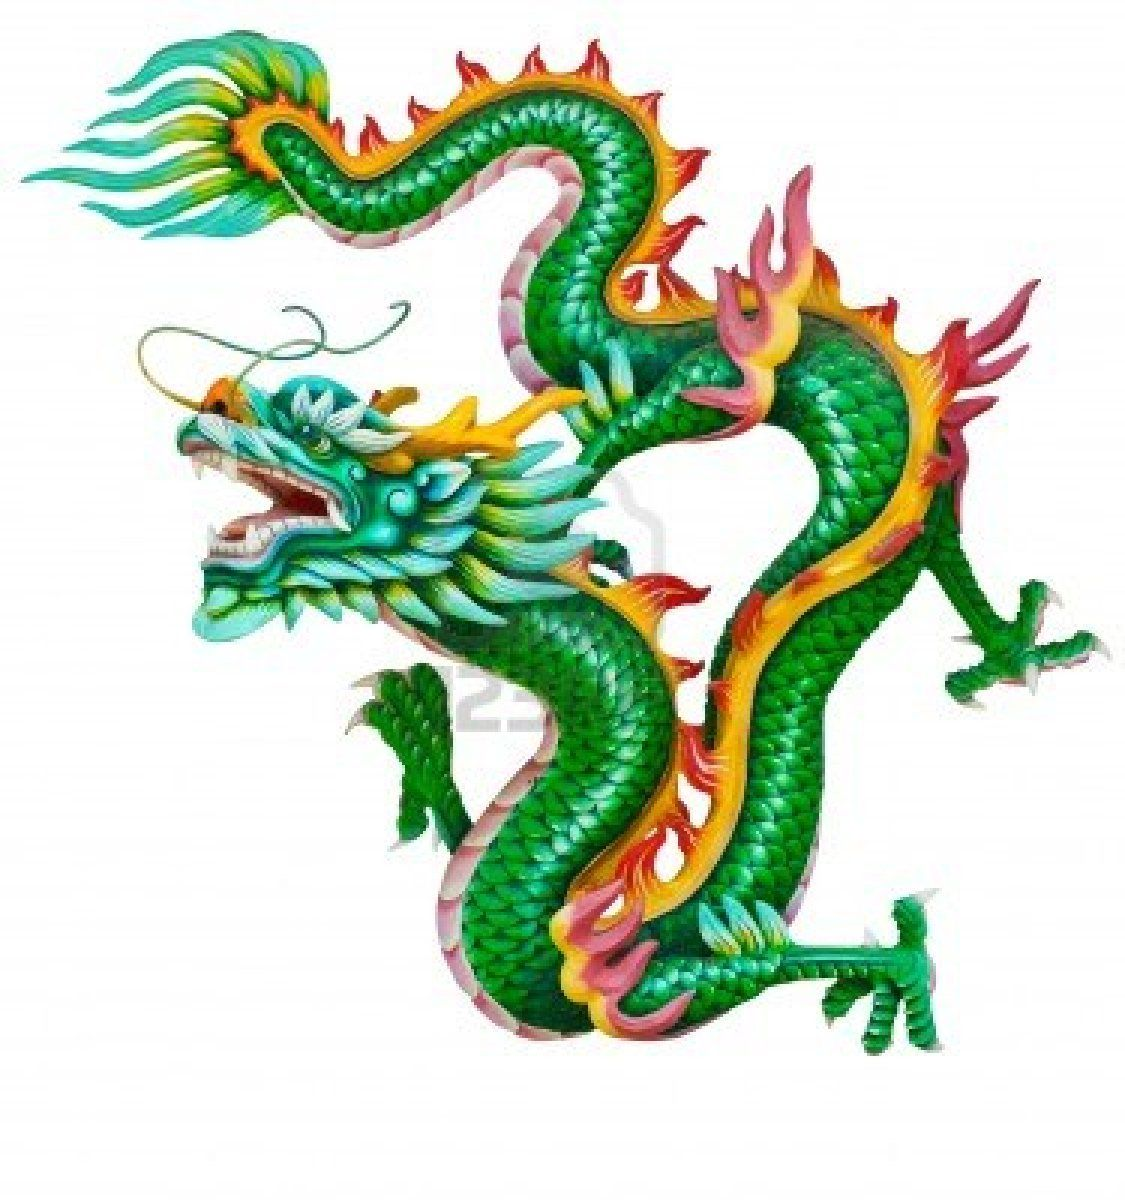 0b4abaa9a Stock Photo in 2019 | Dragon | Dragon tattoo images, Dragon images ...